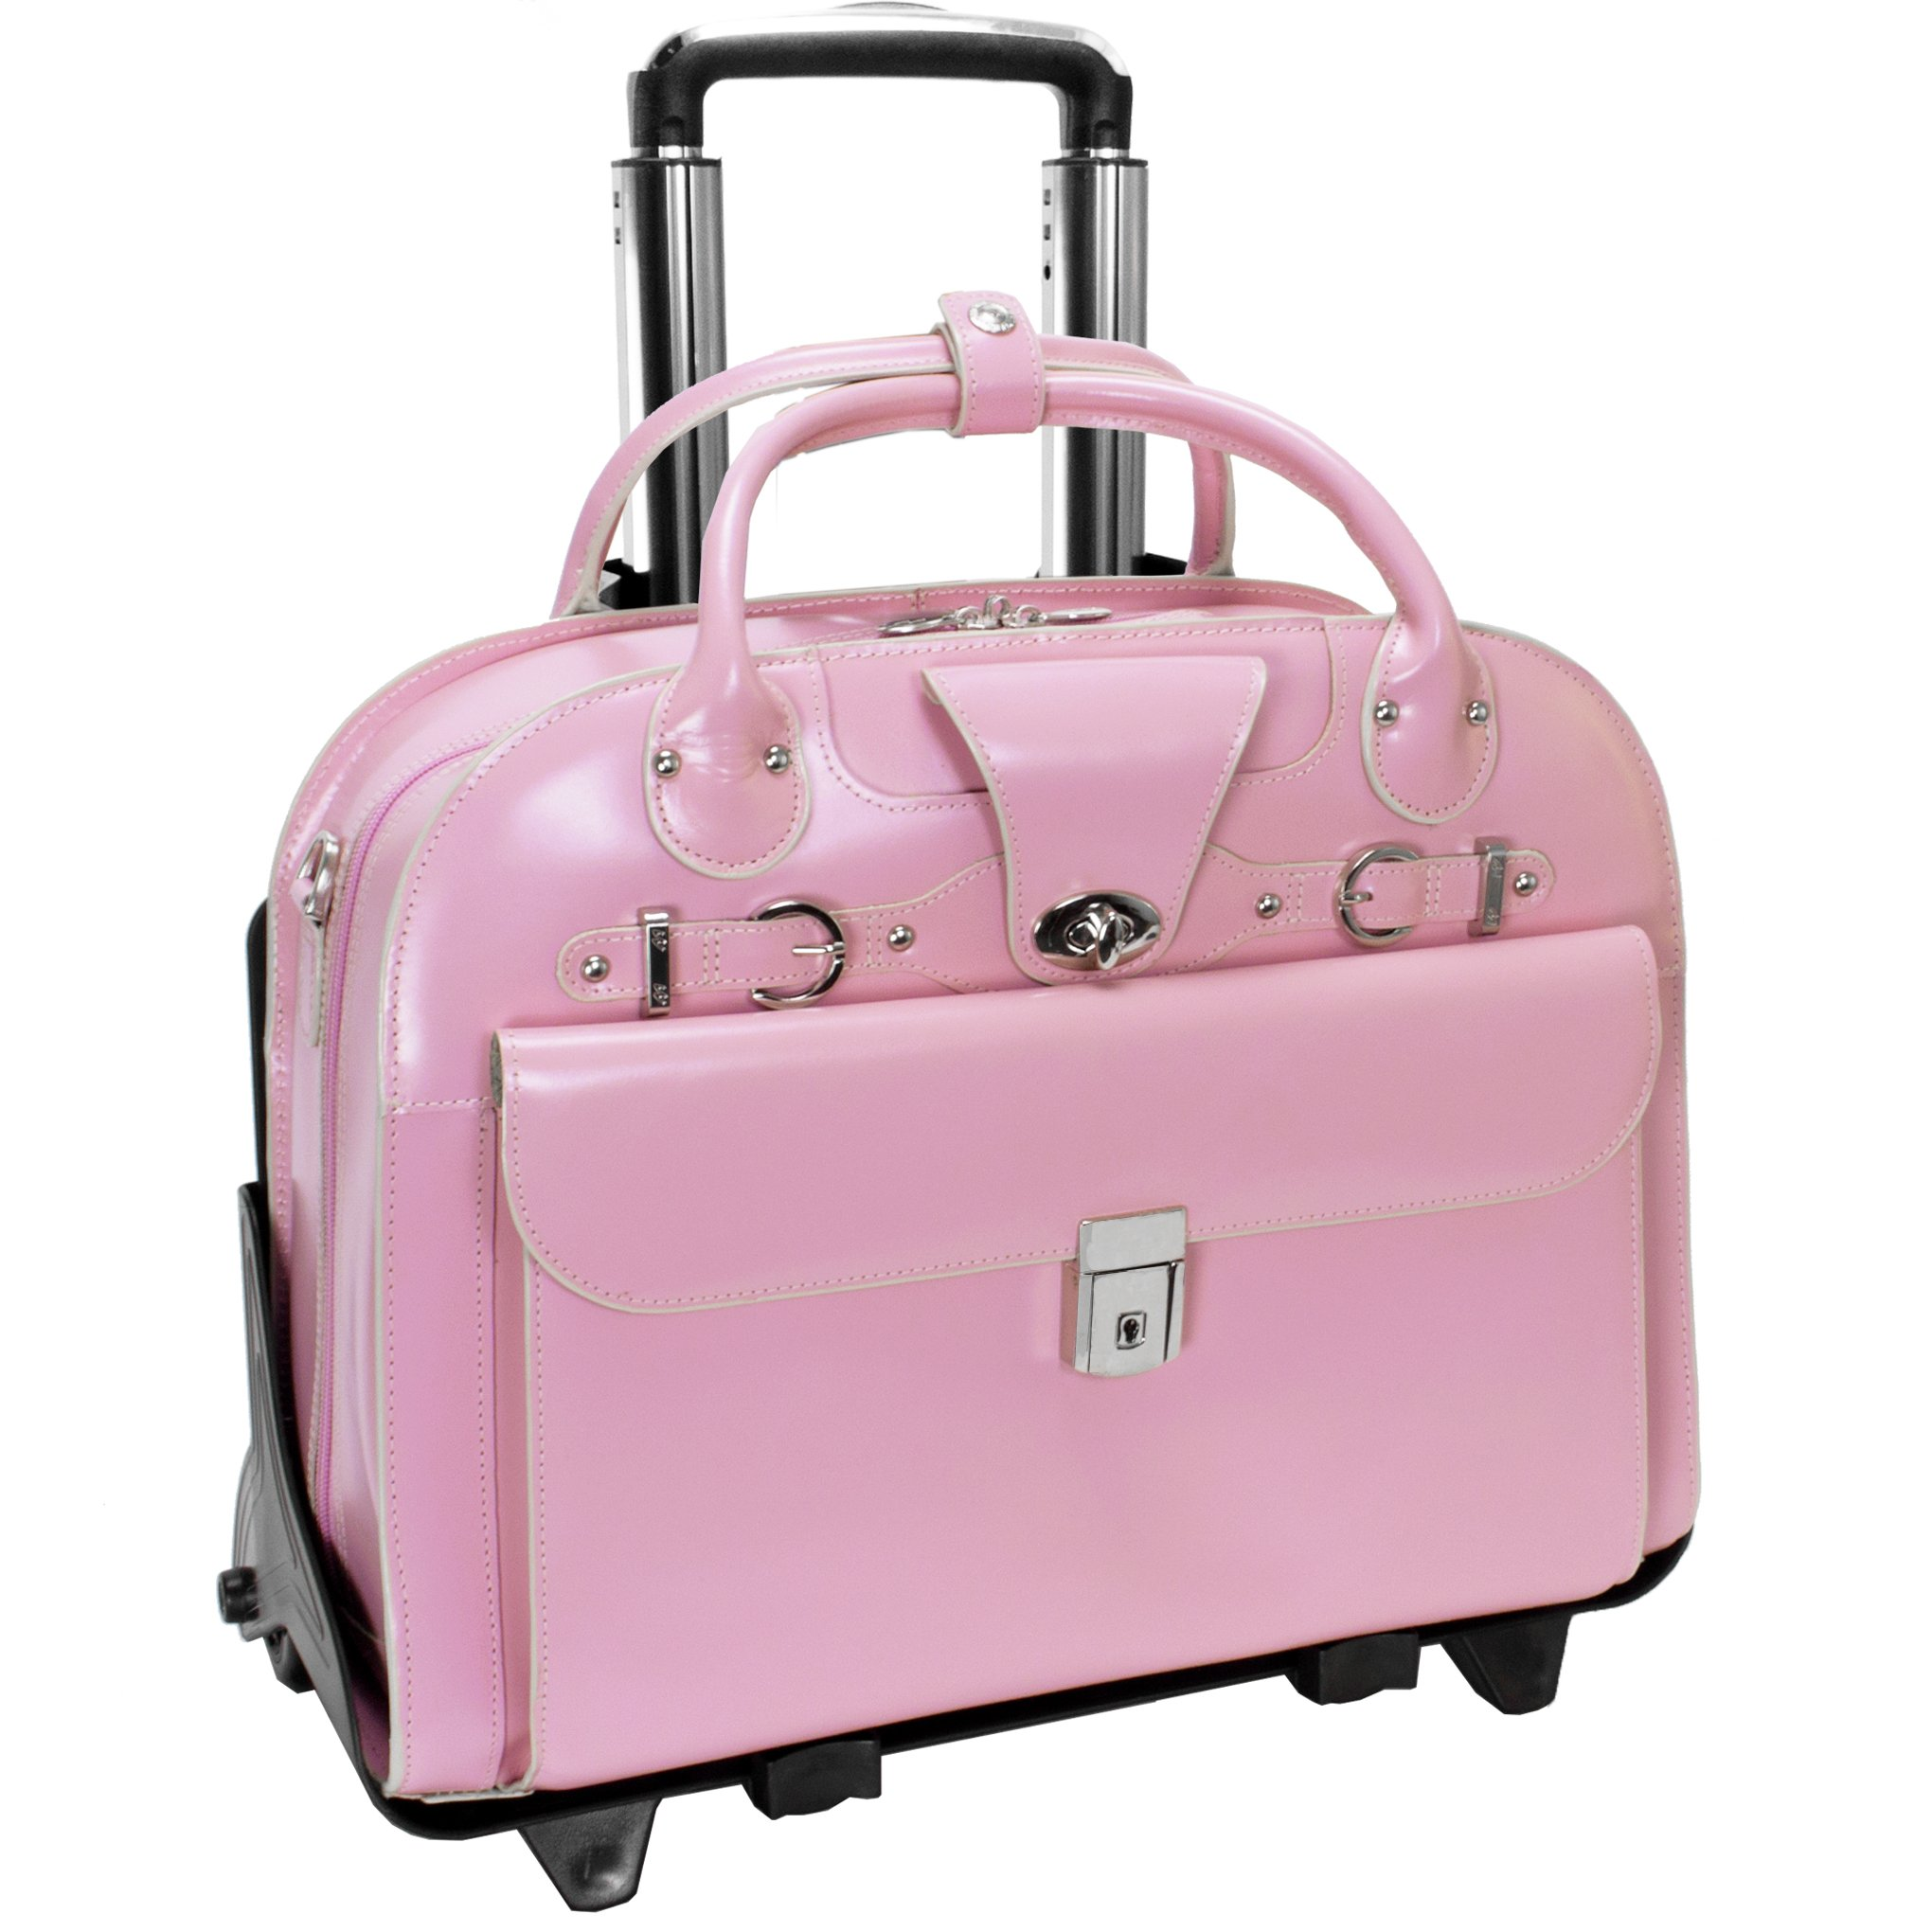 McKleinUSA ROSEVILLE 96649 Pink Leather Fly-Through Checkpoint-Friendly Detachable-Wheeled Ladies' Briefcase